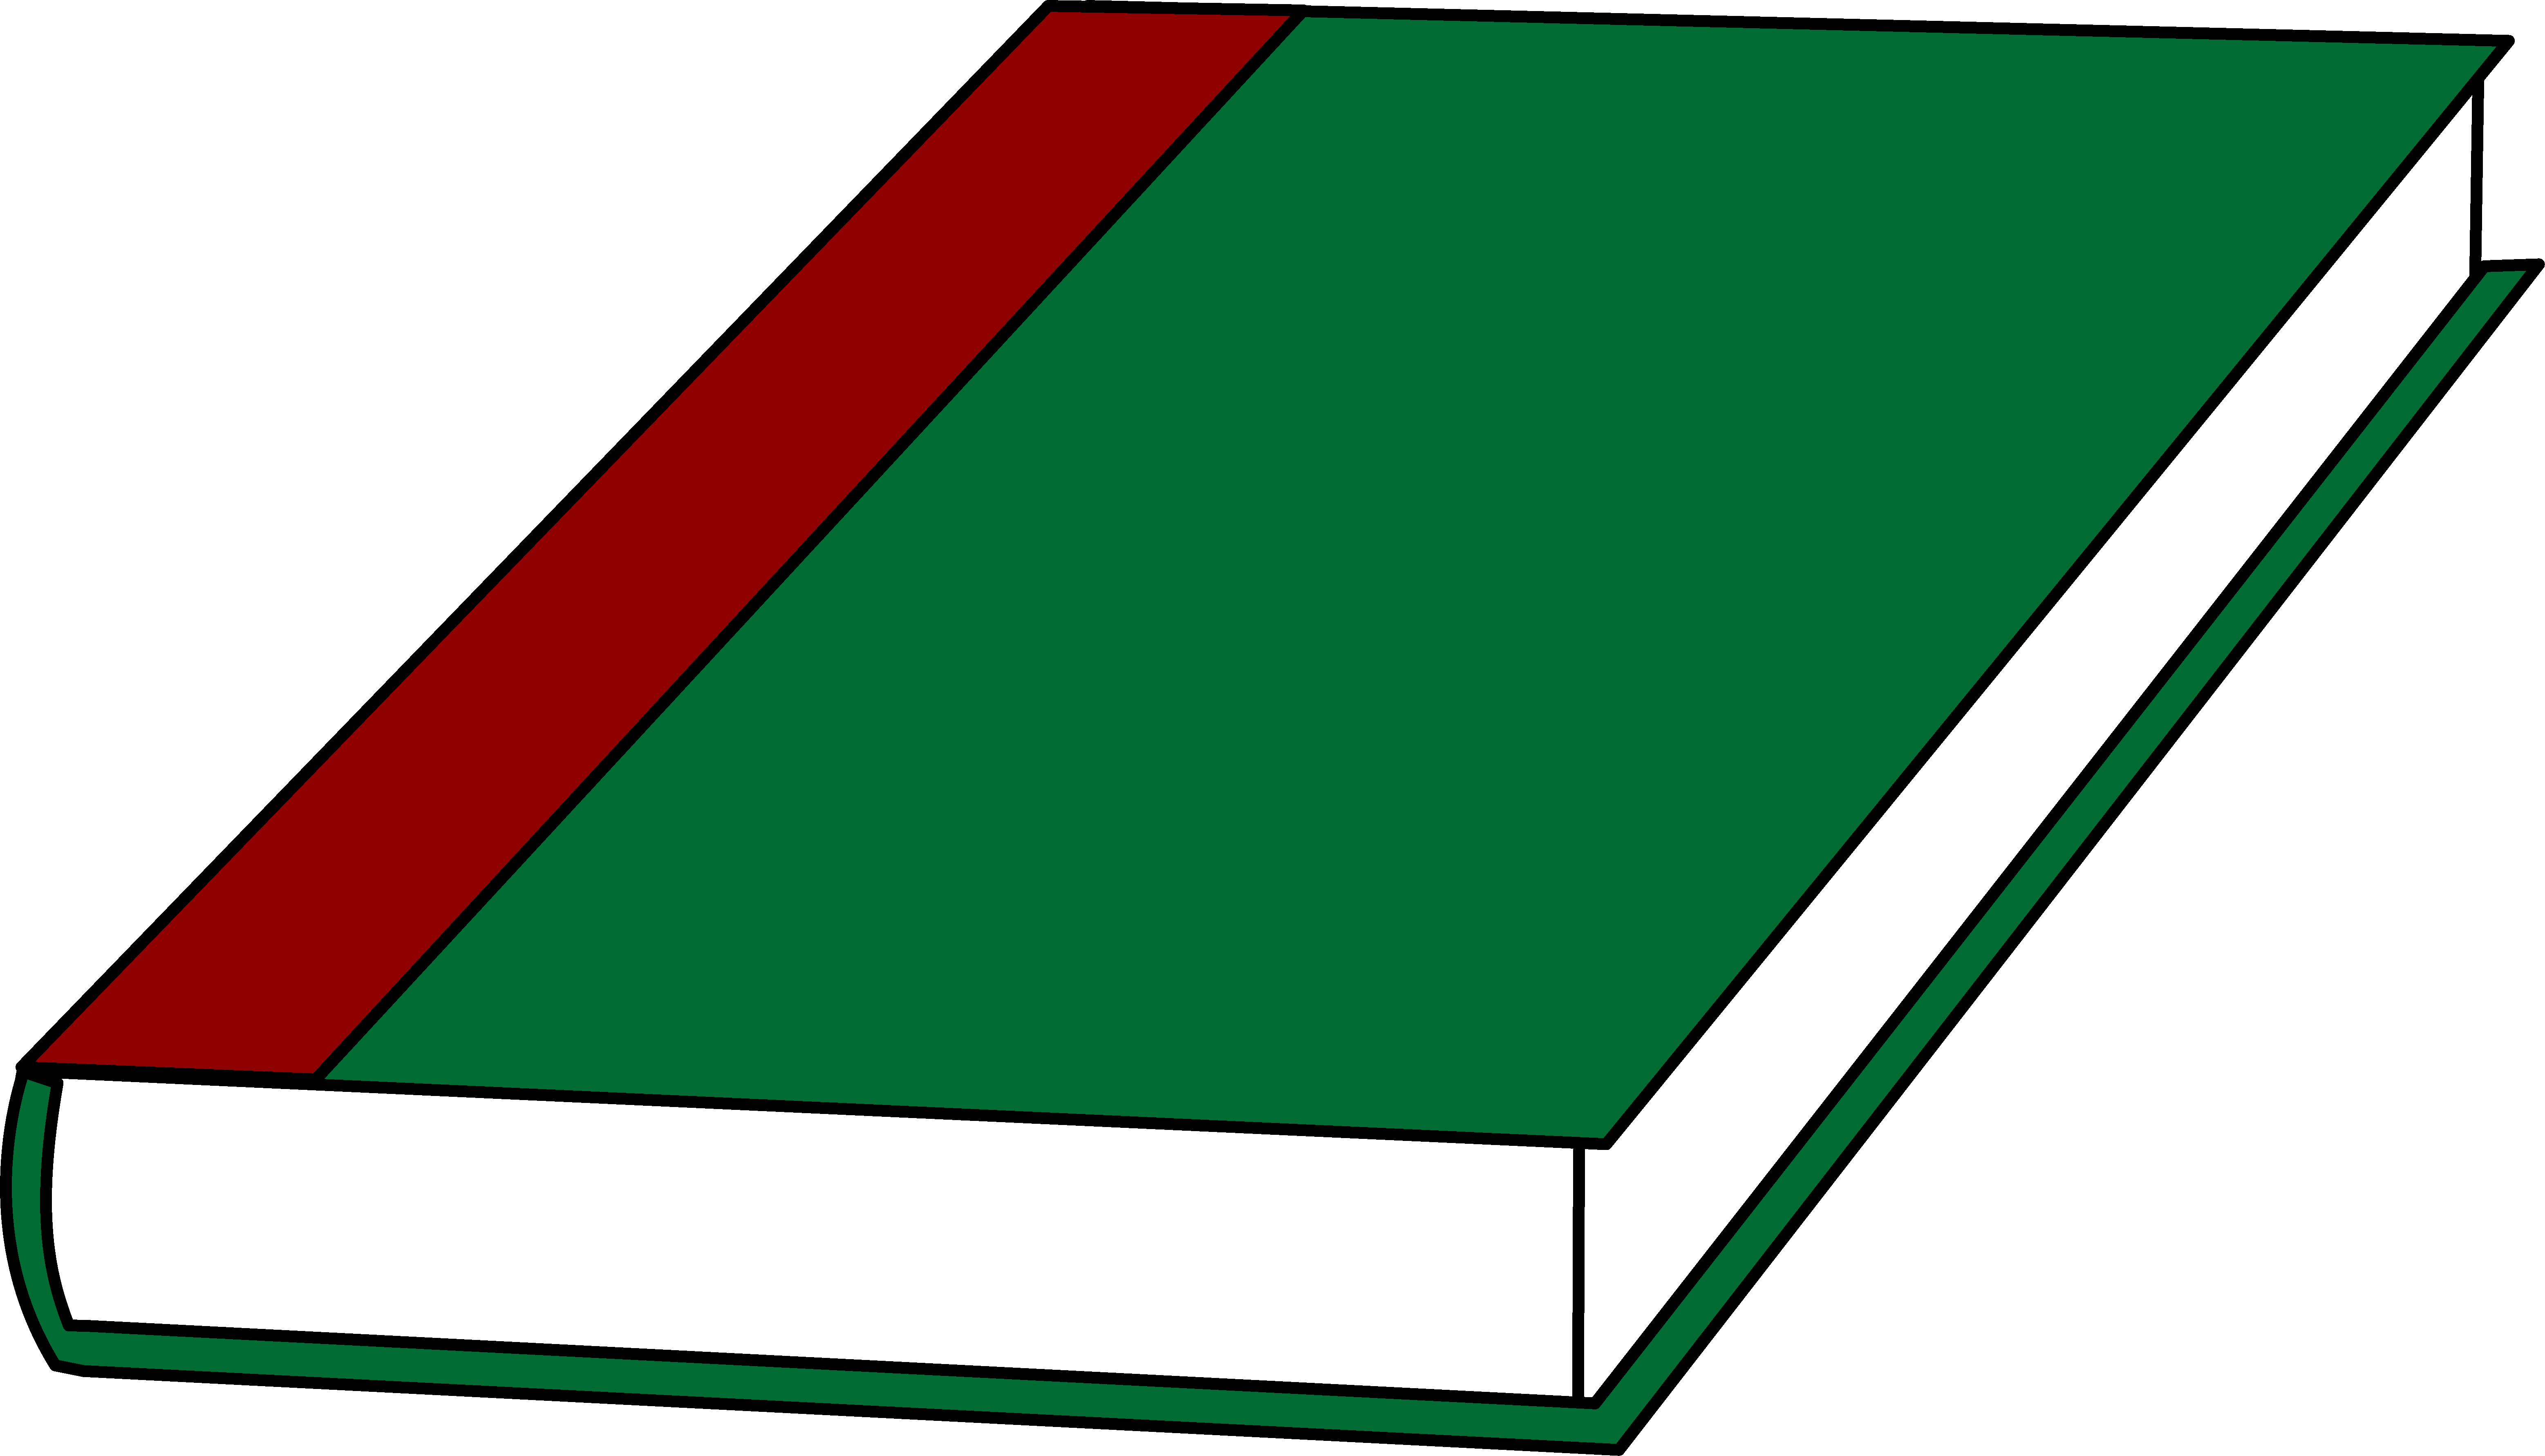 A Book With a Green Cover.